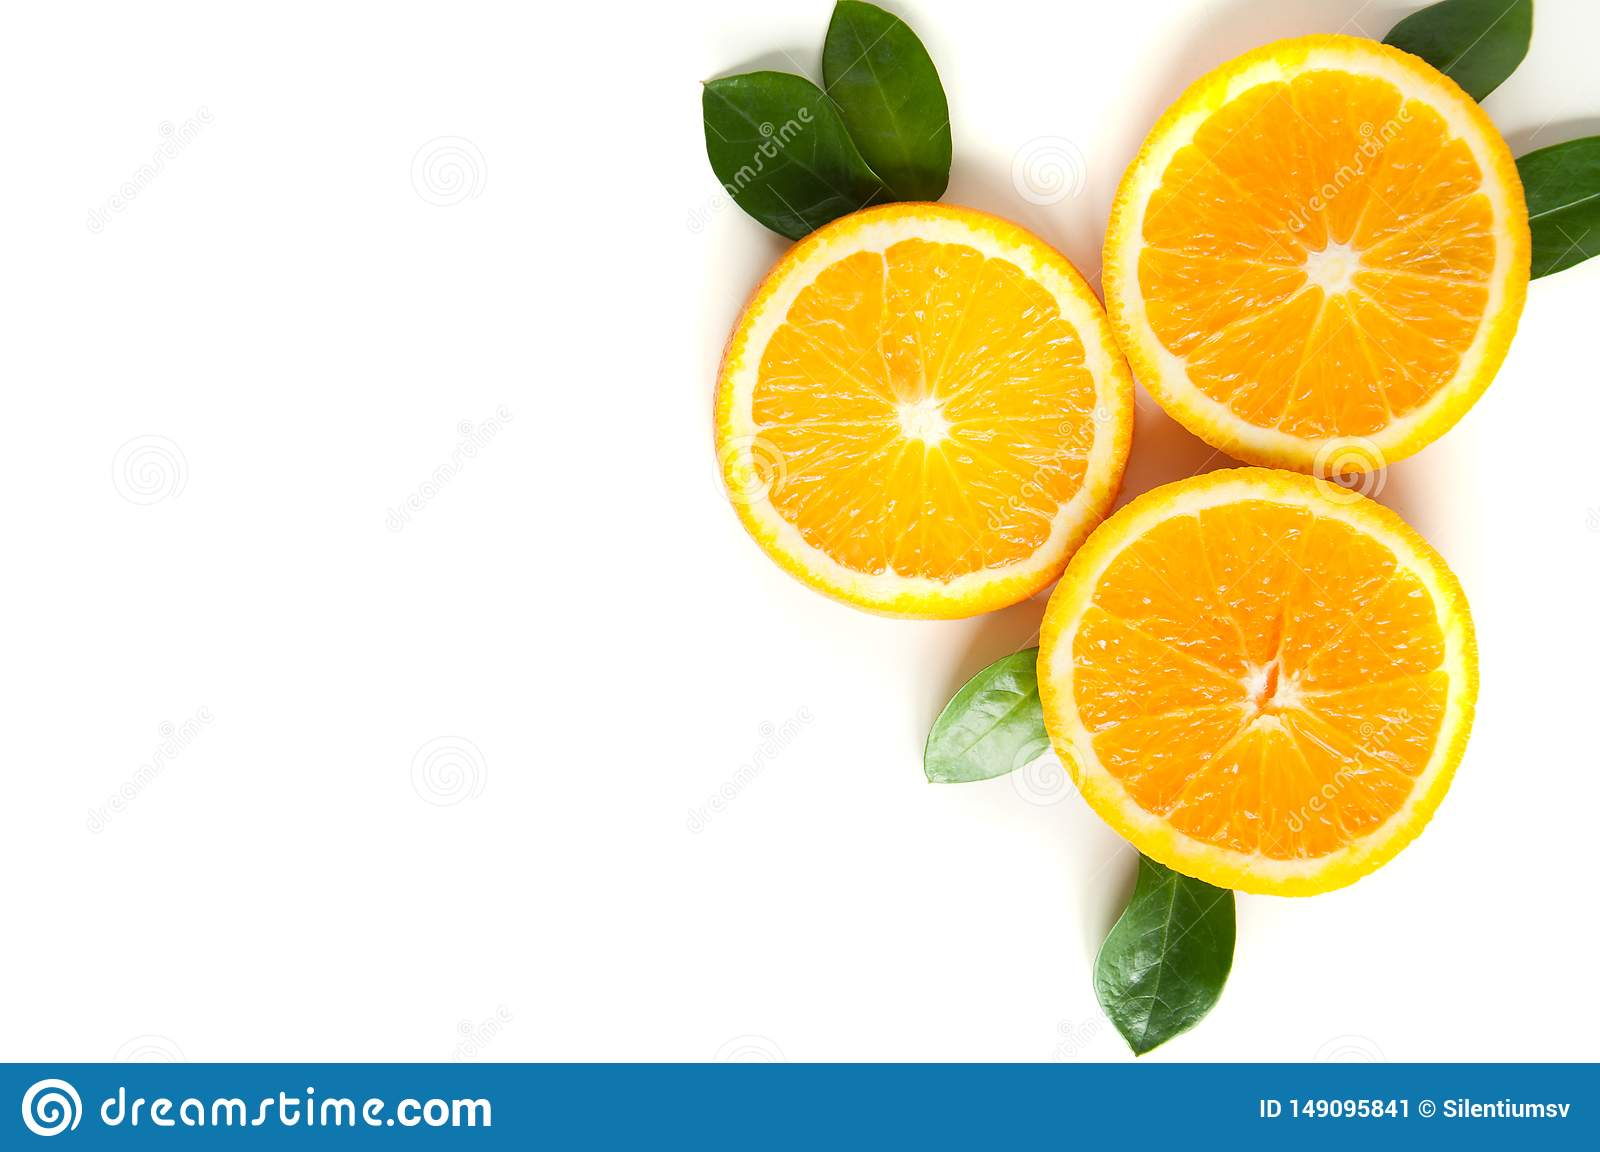 Round orange slices on a white background. Citrus tropical fruit background. Bright food. Dietary vitamin nutrition.